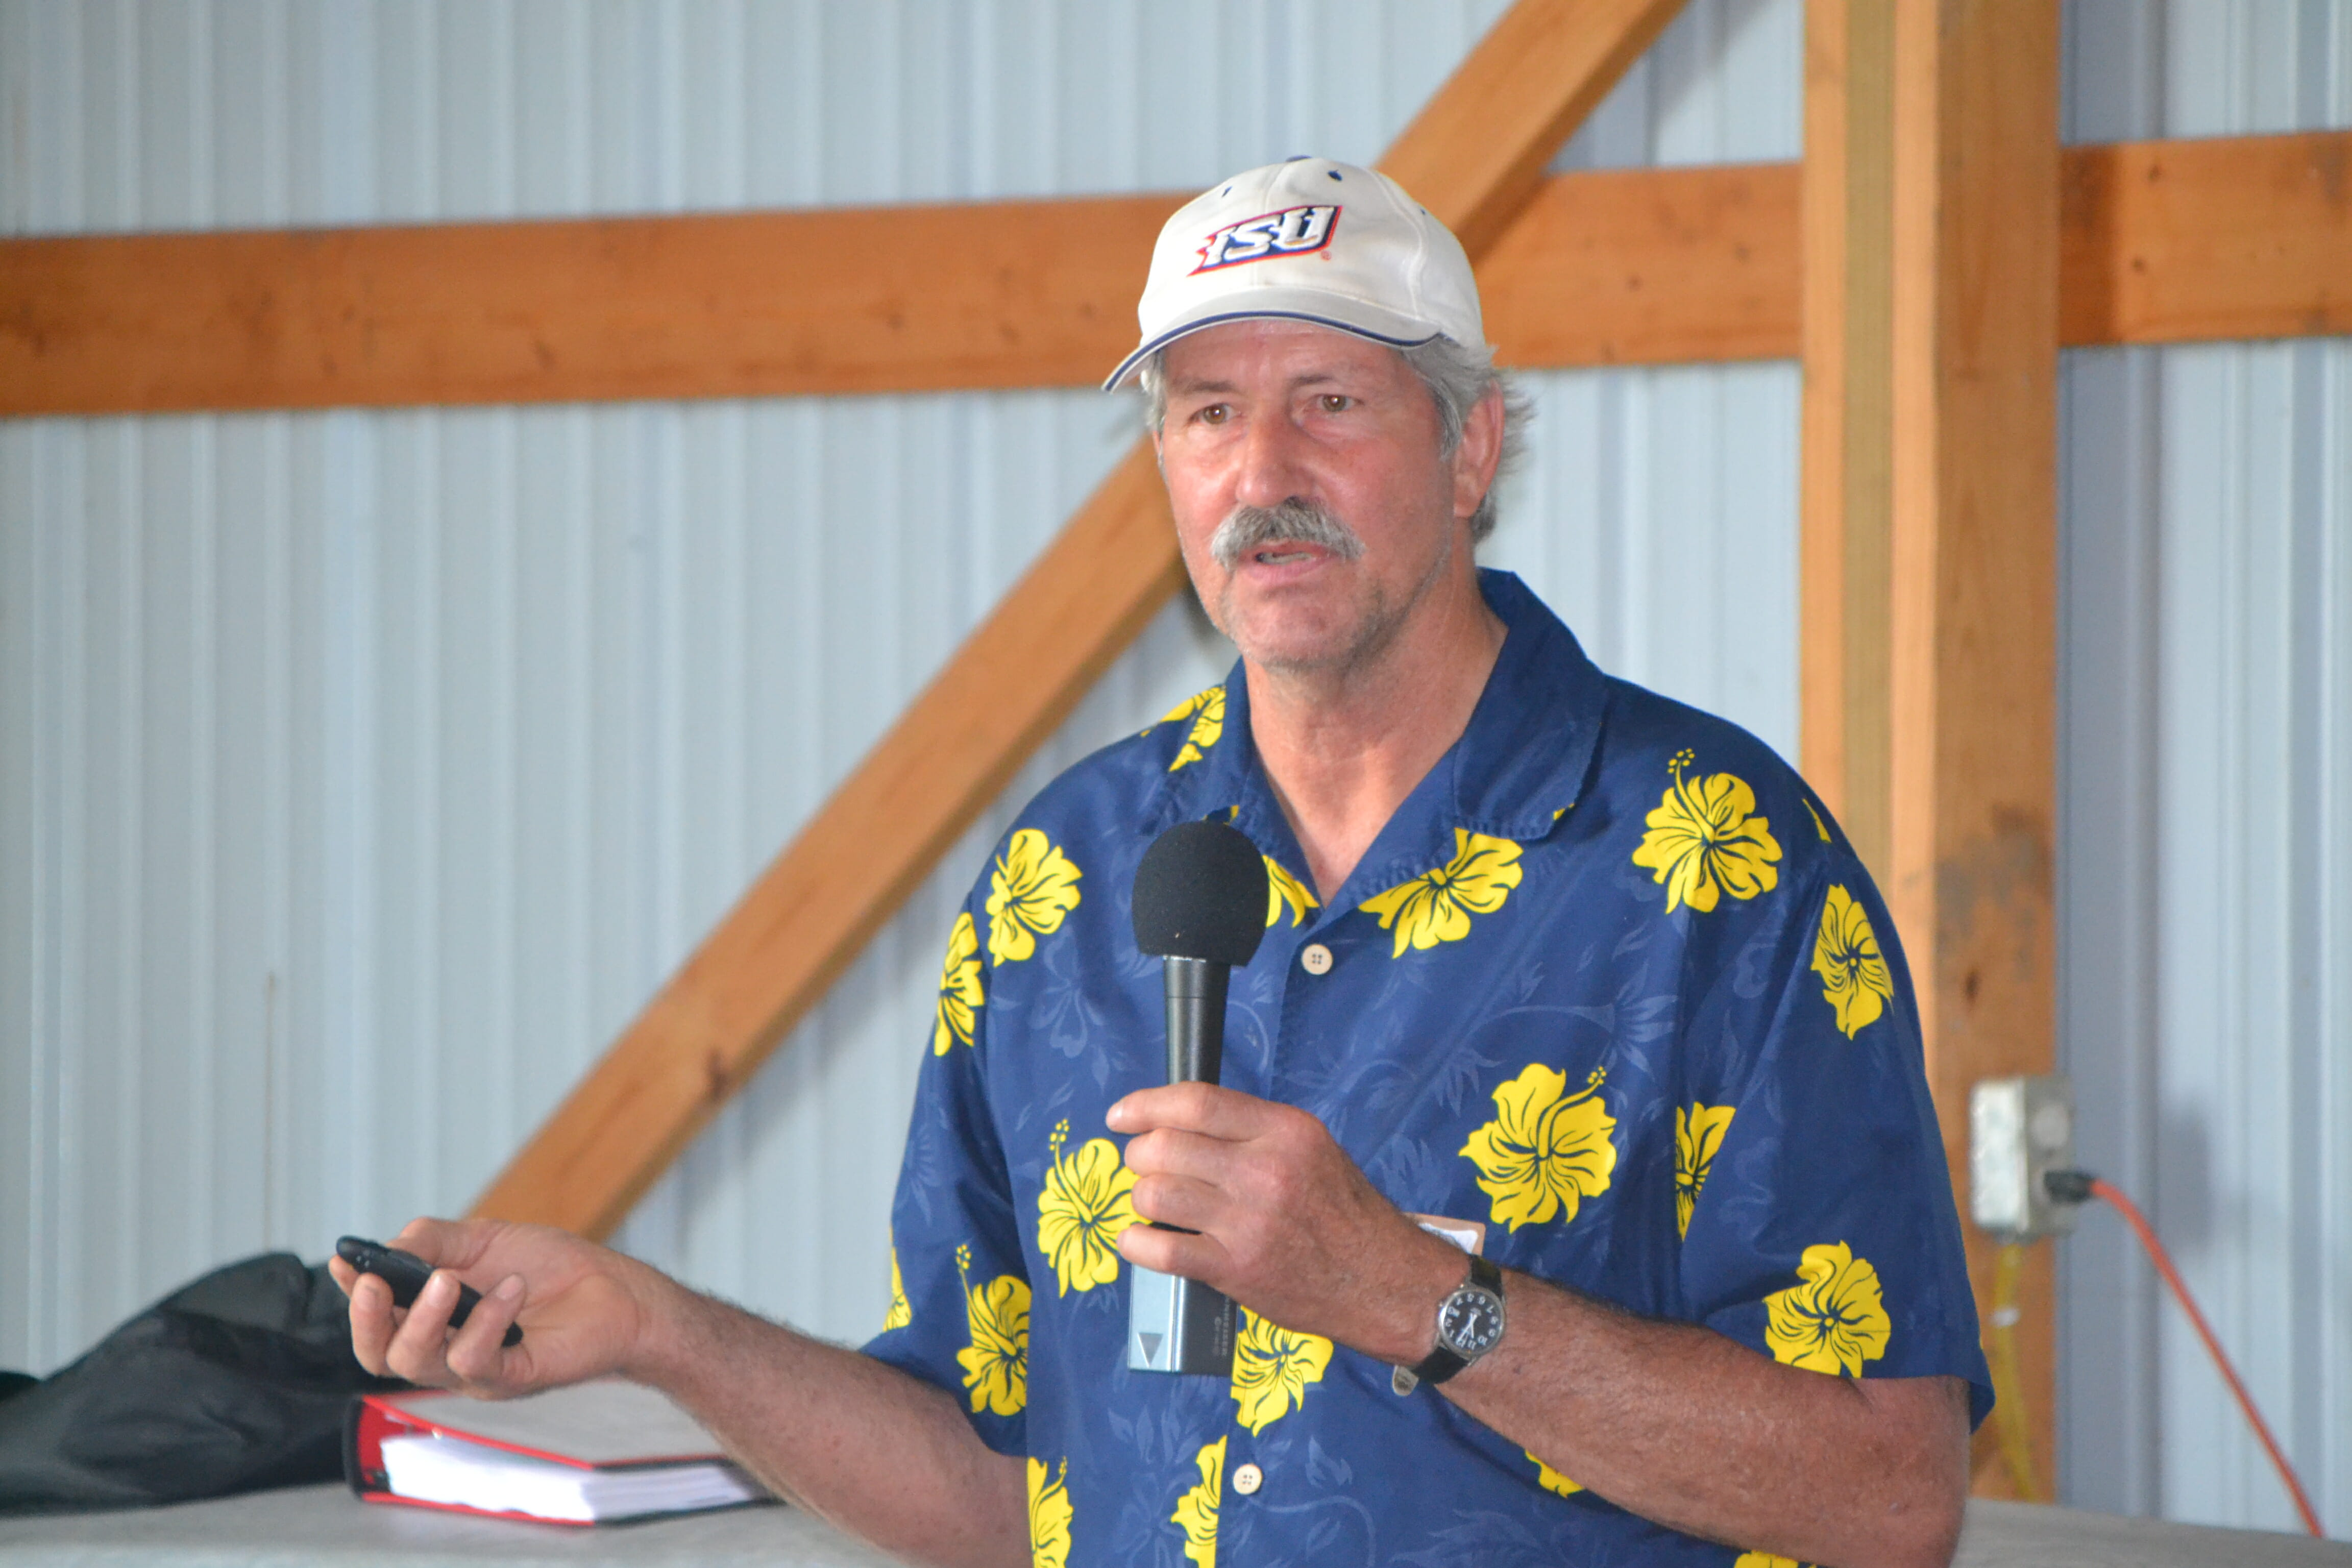 Long-time PFI member Paul Mugge contributed to the discussion on weed control.